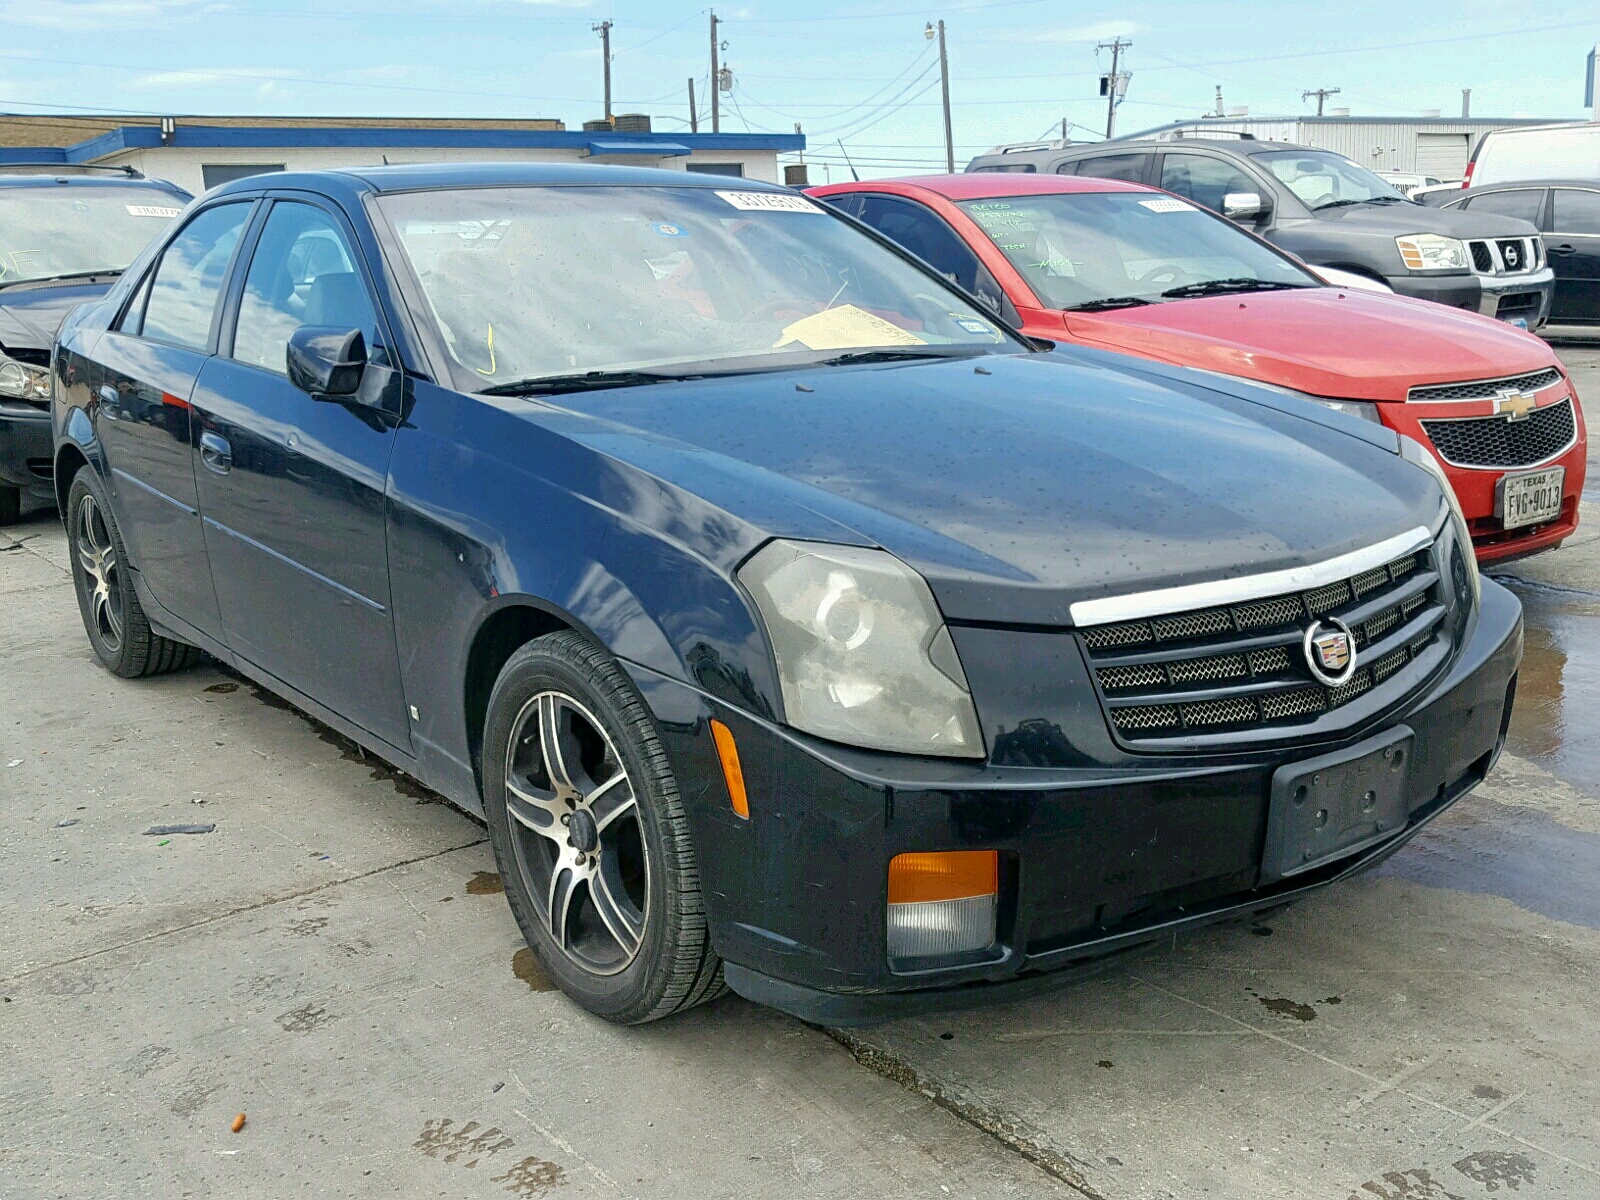 hight resolution of 1g6dm57t170153566 2007 cadillac cts 2 8l left view 1g6dm57t170153566